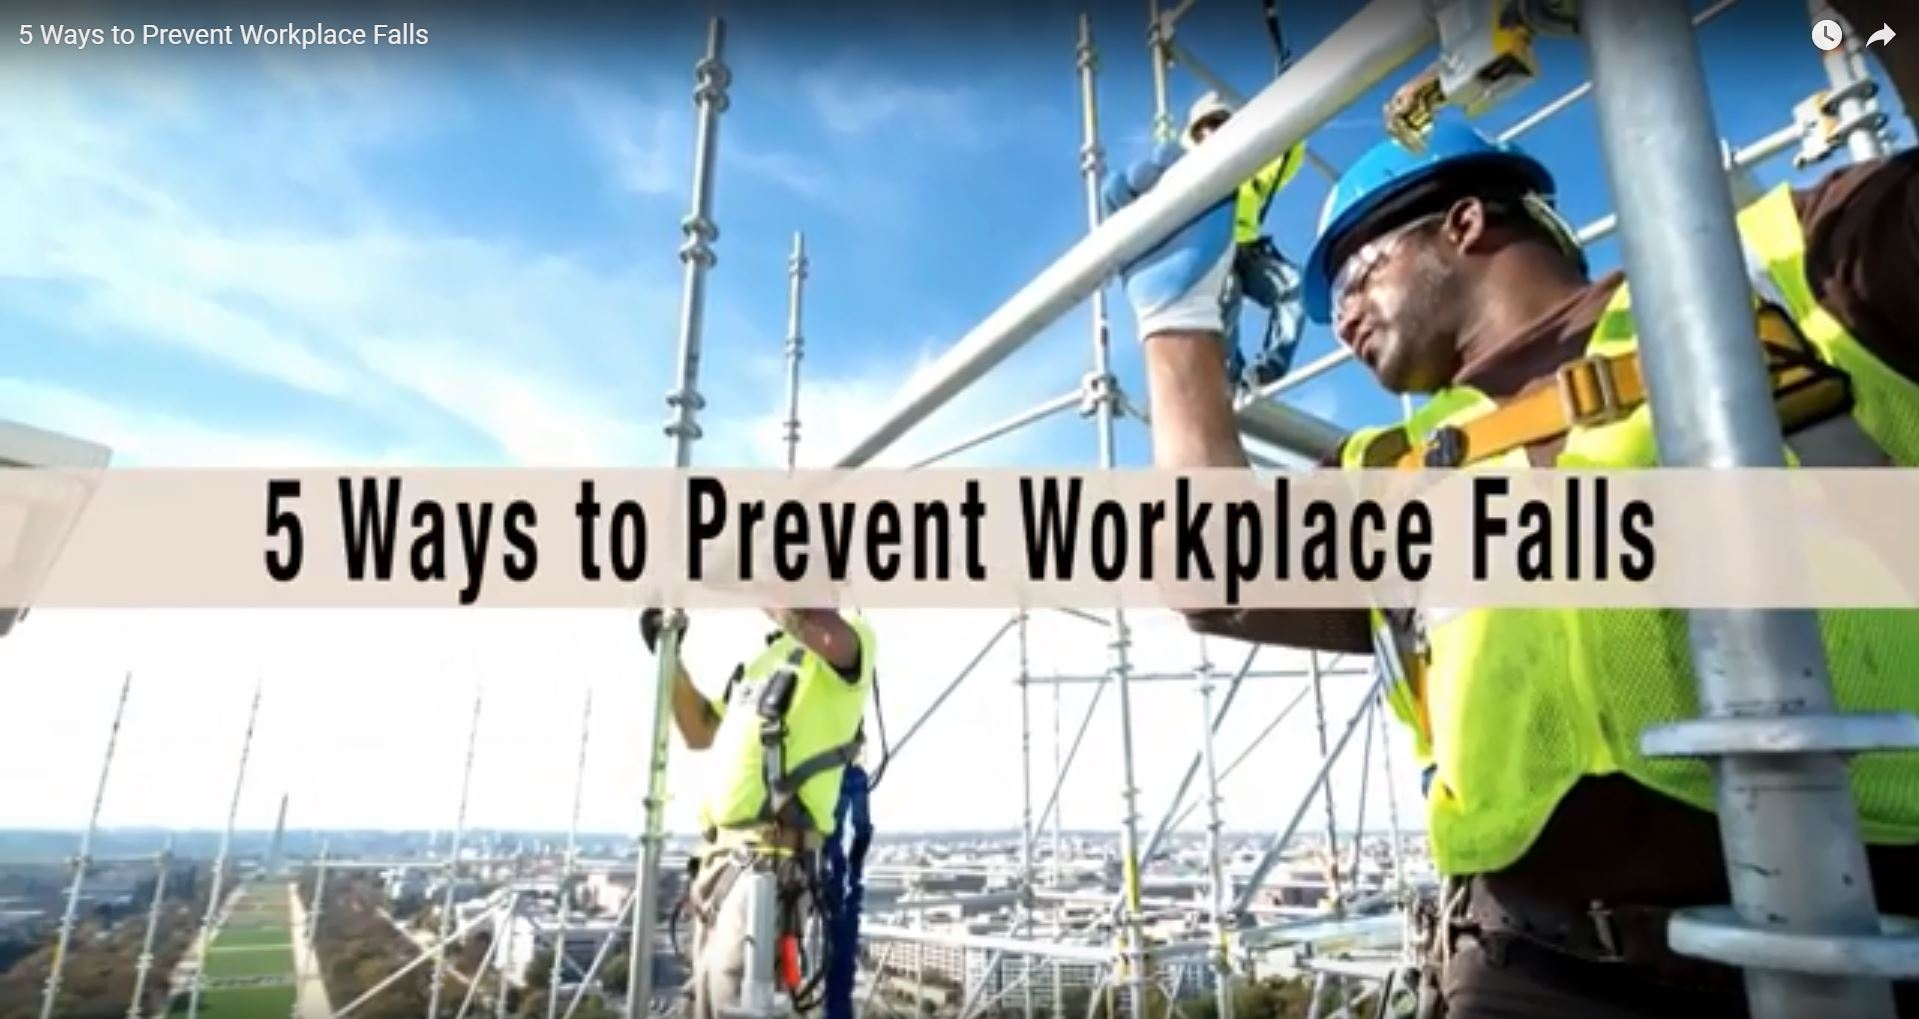 5 Ways to Prevent Workplace Falls